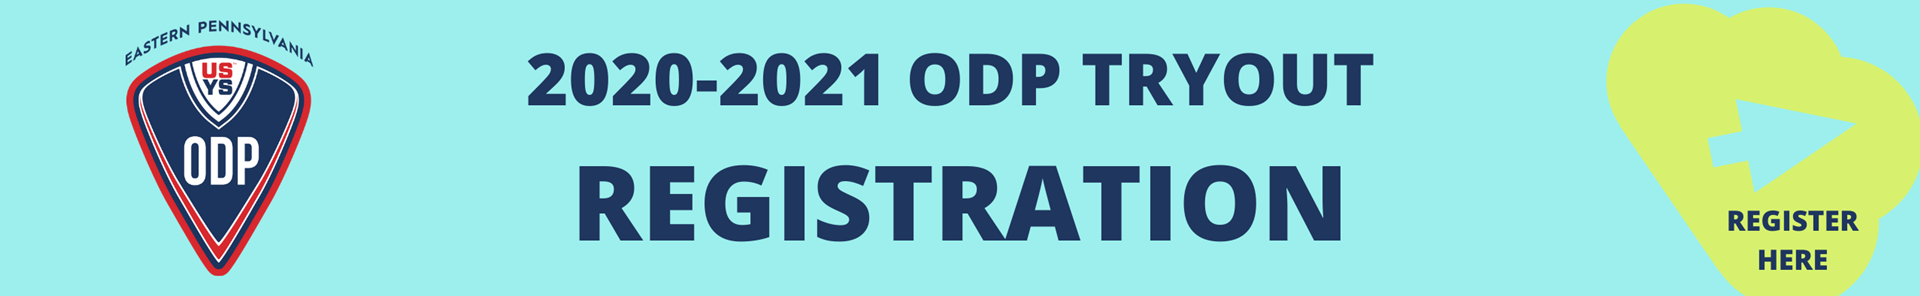 2020-2021_ODP_TRYOUT_REGISTRATION_BUTTON